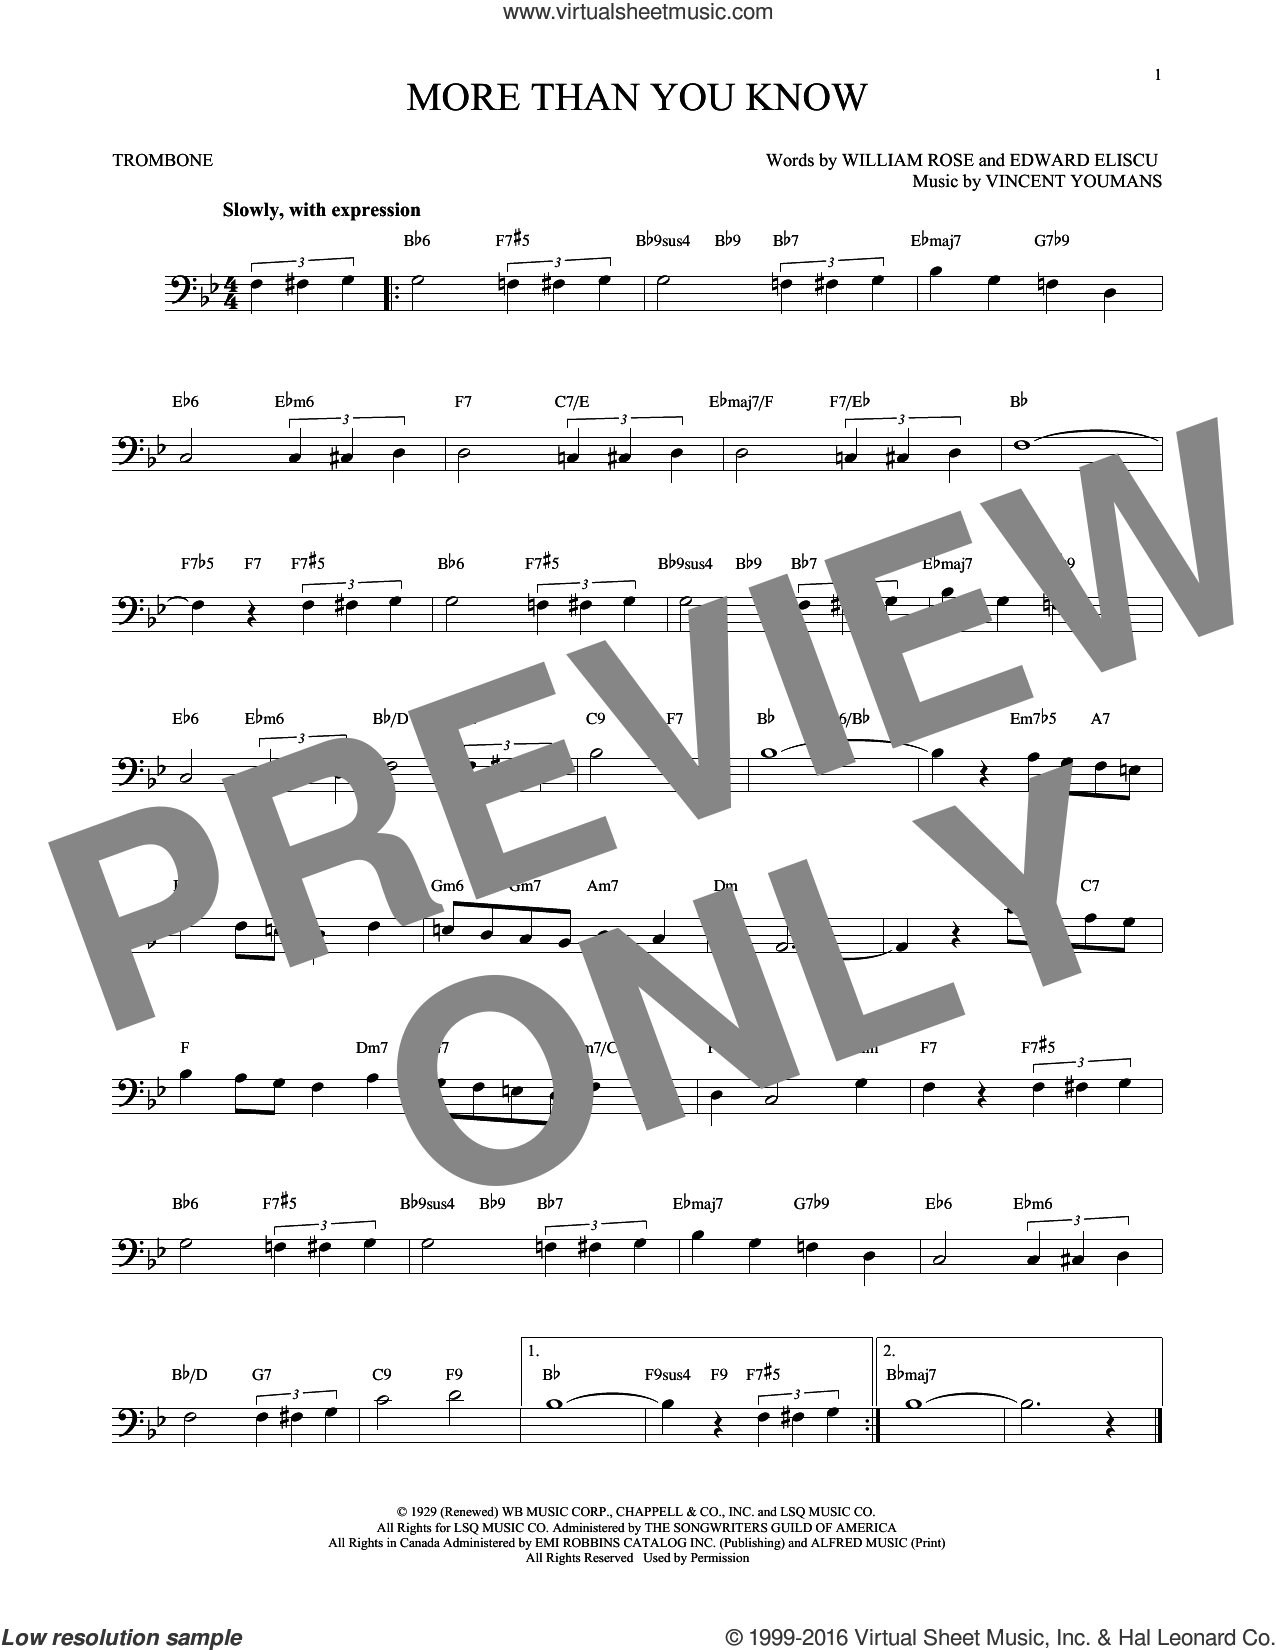 More Than You Know sheet music for trombone solo by Vincent Youmans, Edward Eliscu and William Rose, intermediate skill level